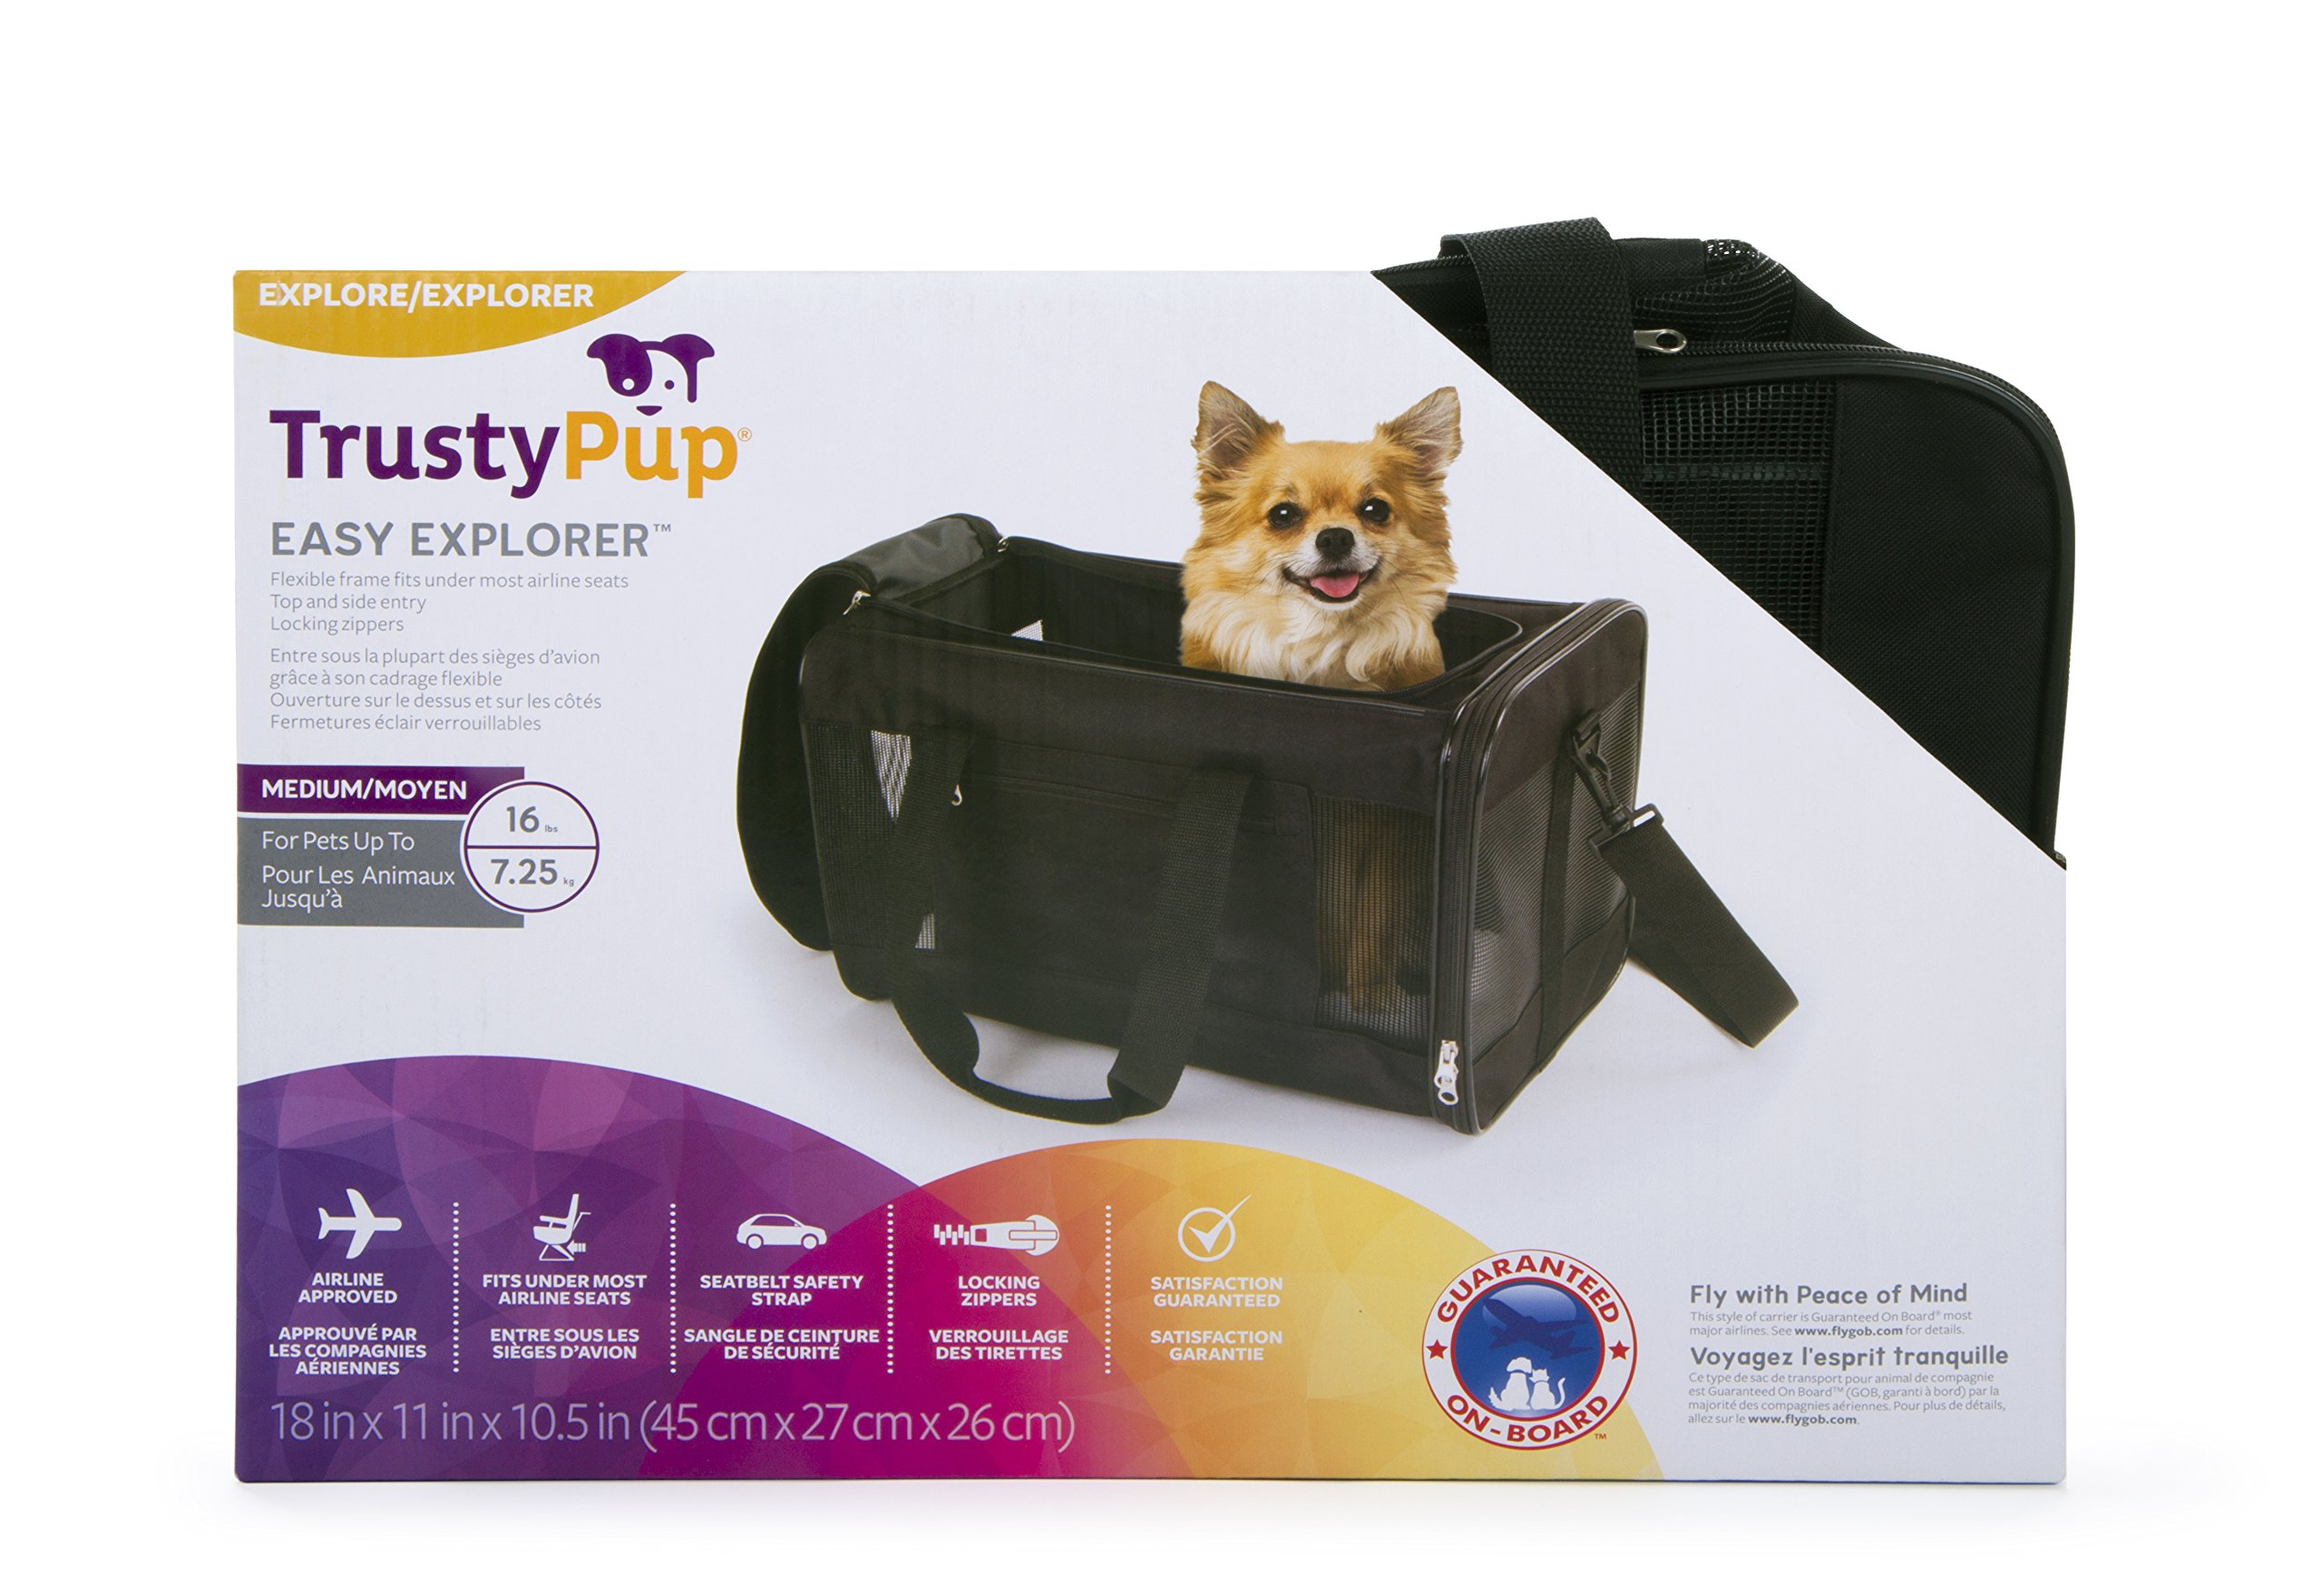 TrustyPup Travel Easy Explorer Airline Approved Pet Carrier, Medium, Black